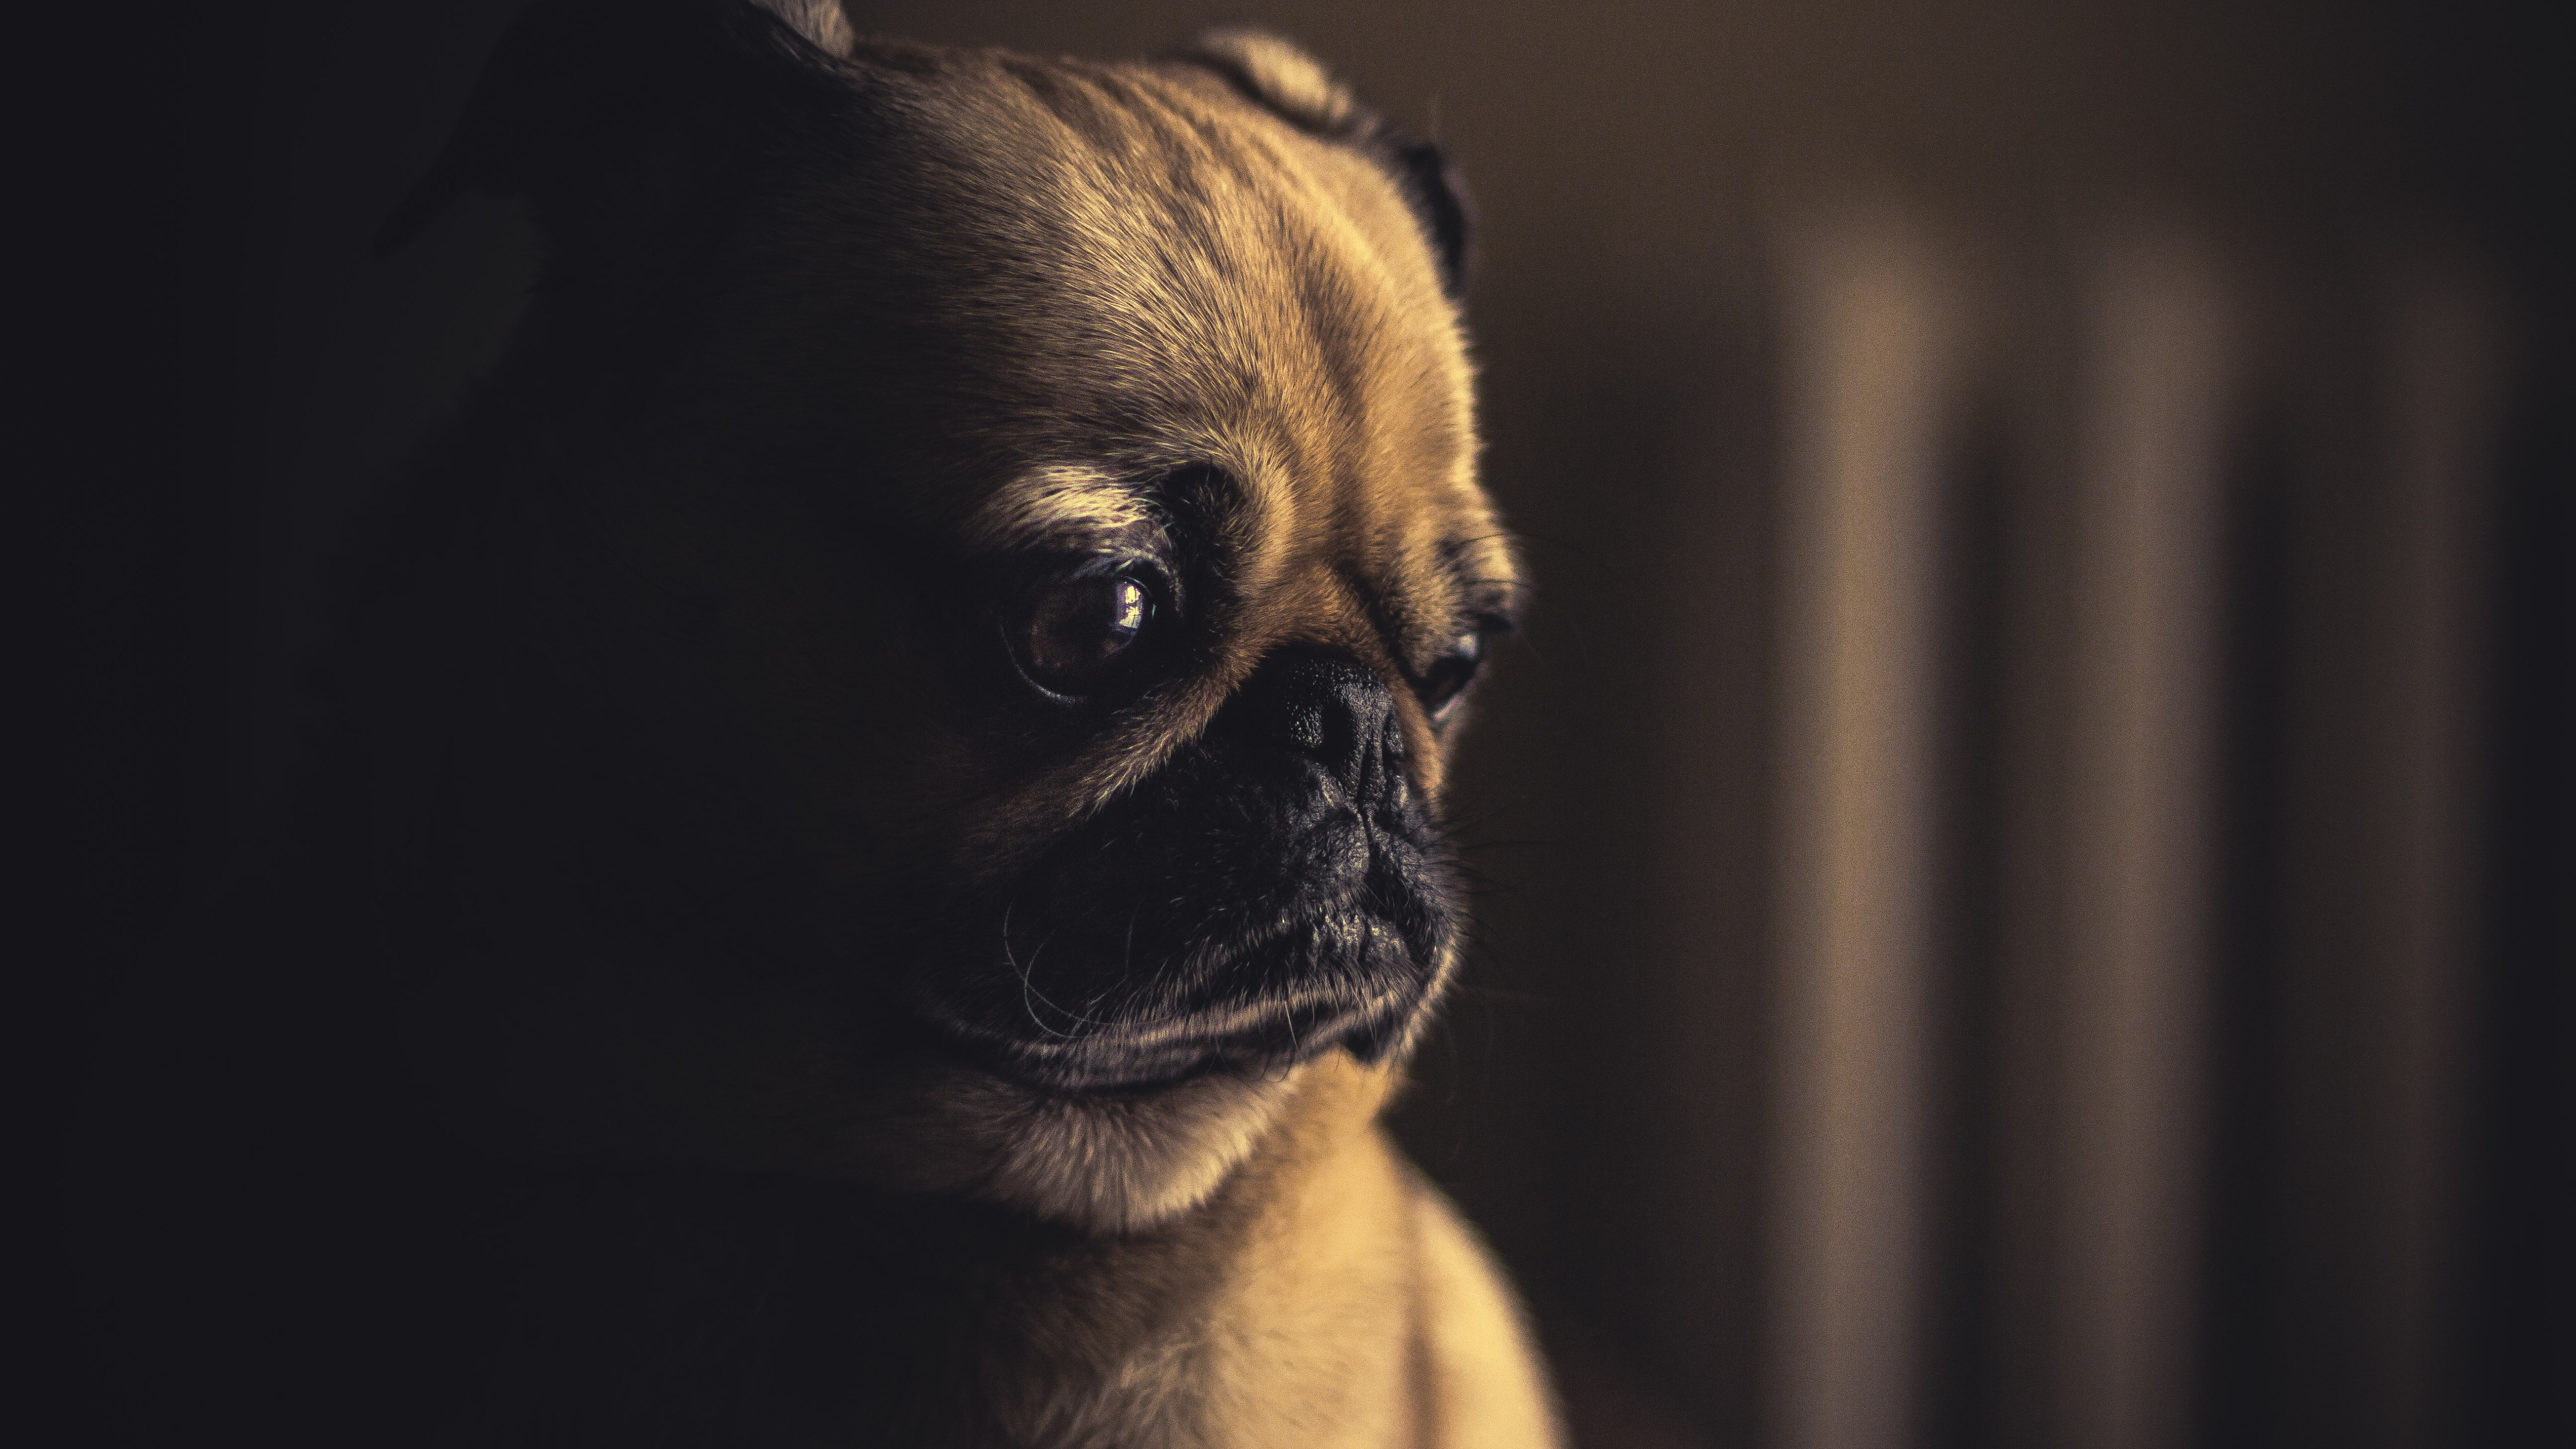 So cute this pug puppy wallpaper 5120x2880